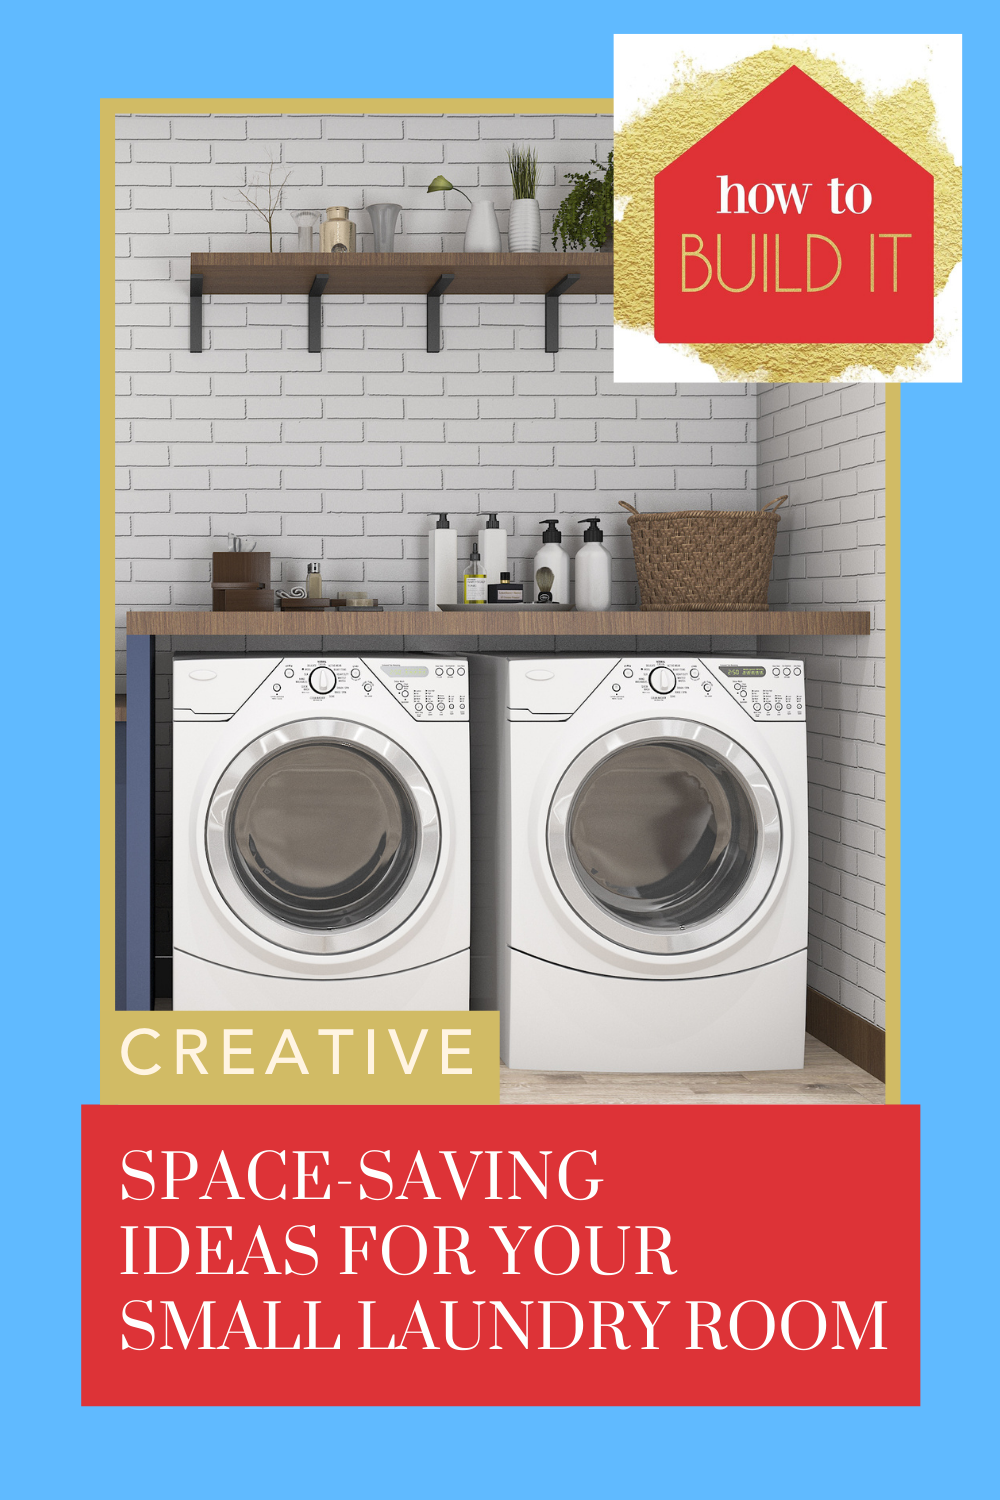 Howtobuildit.org is the place to go for the best DIY and home improvement project ideas! You don't have to have a big space to have big potential! Check out these awesome ideas for a small laundry area.